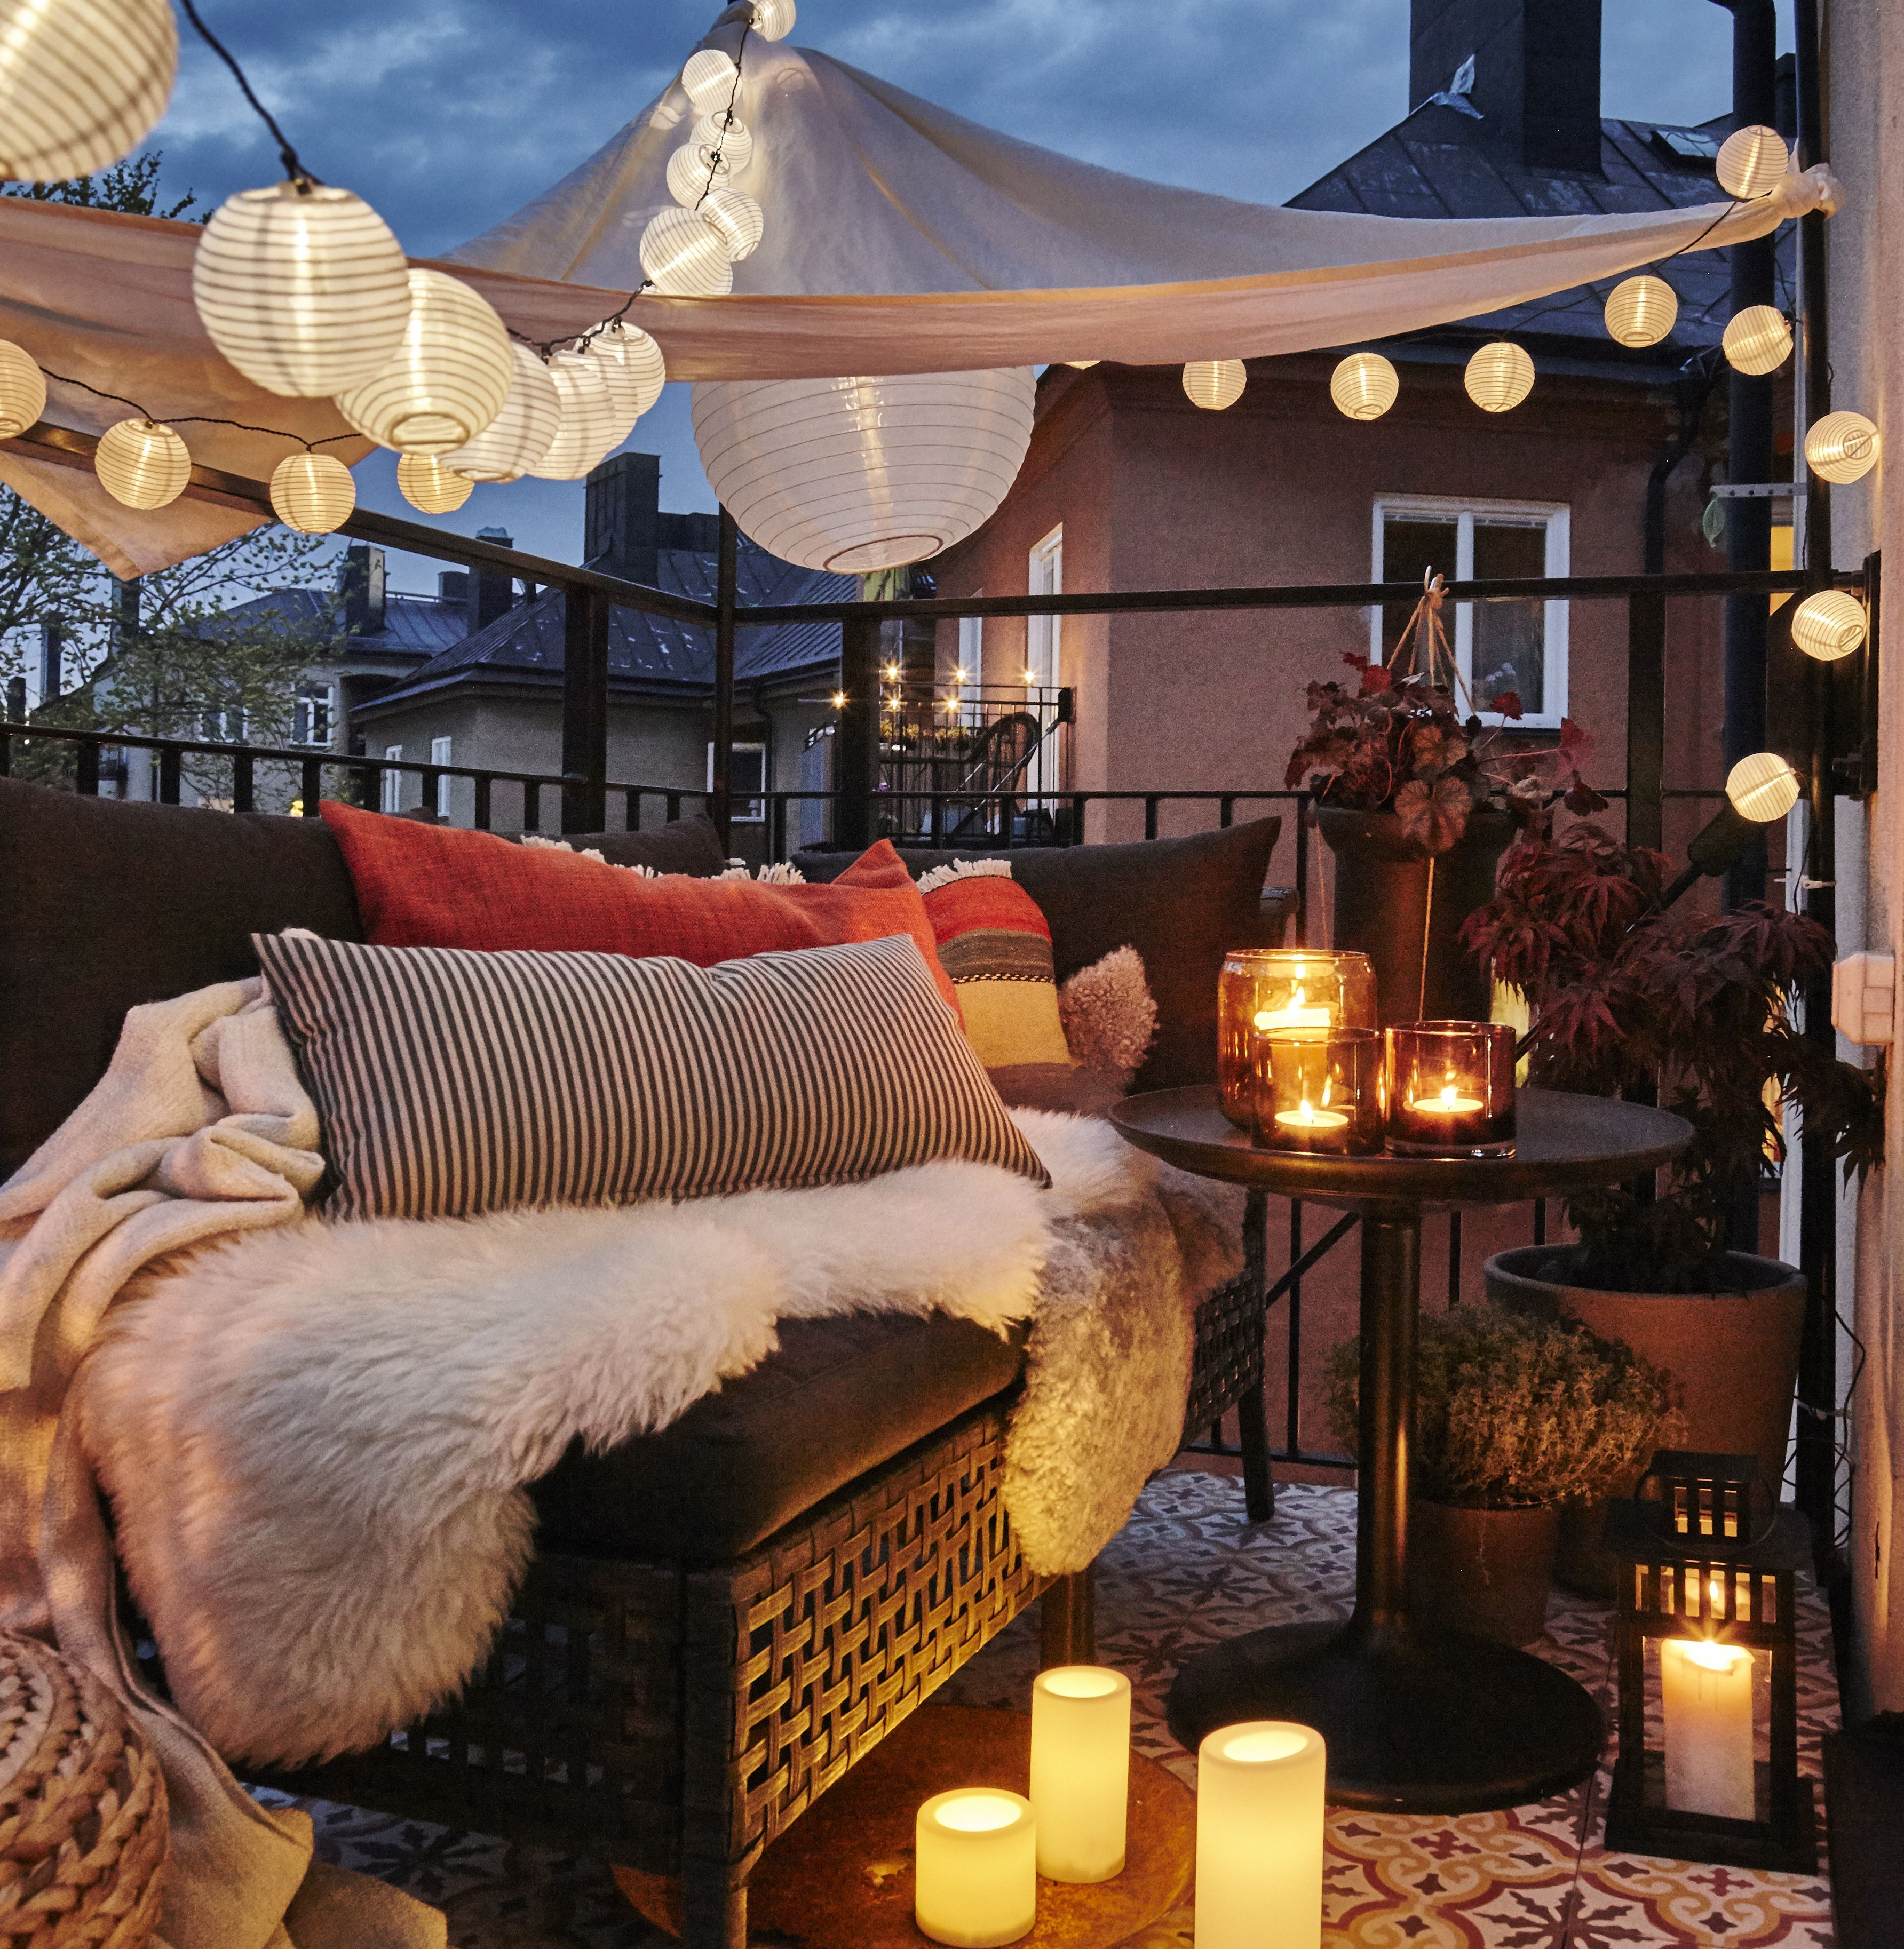 Lighting for small balconies - Create An Oasis Of Relaxation Right Outside Your Back Door Click For Ikea Ideas To Small Balcony